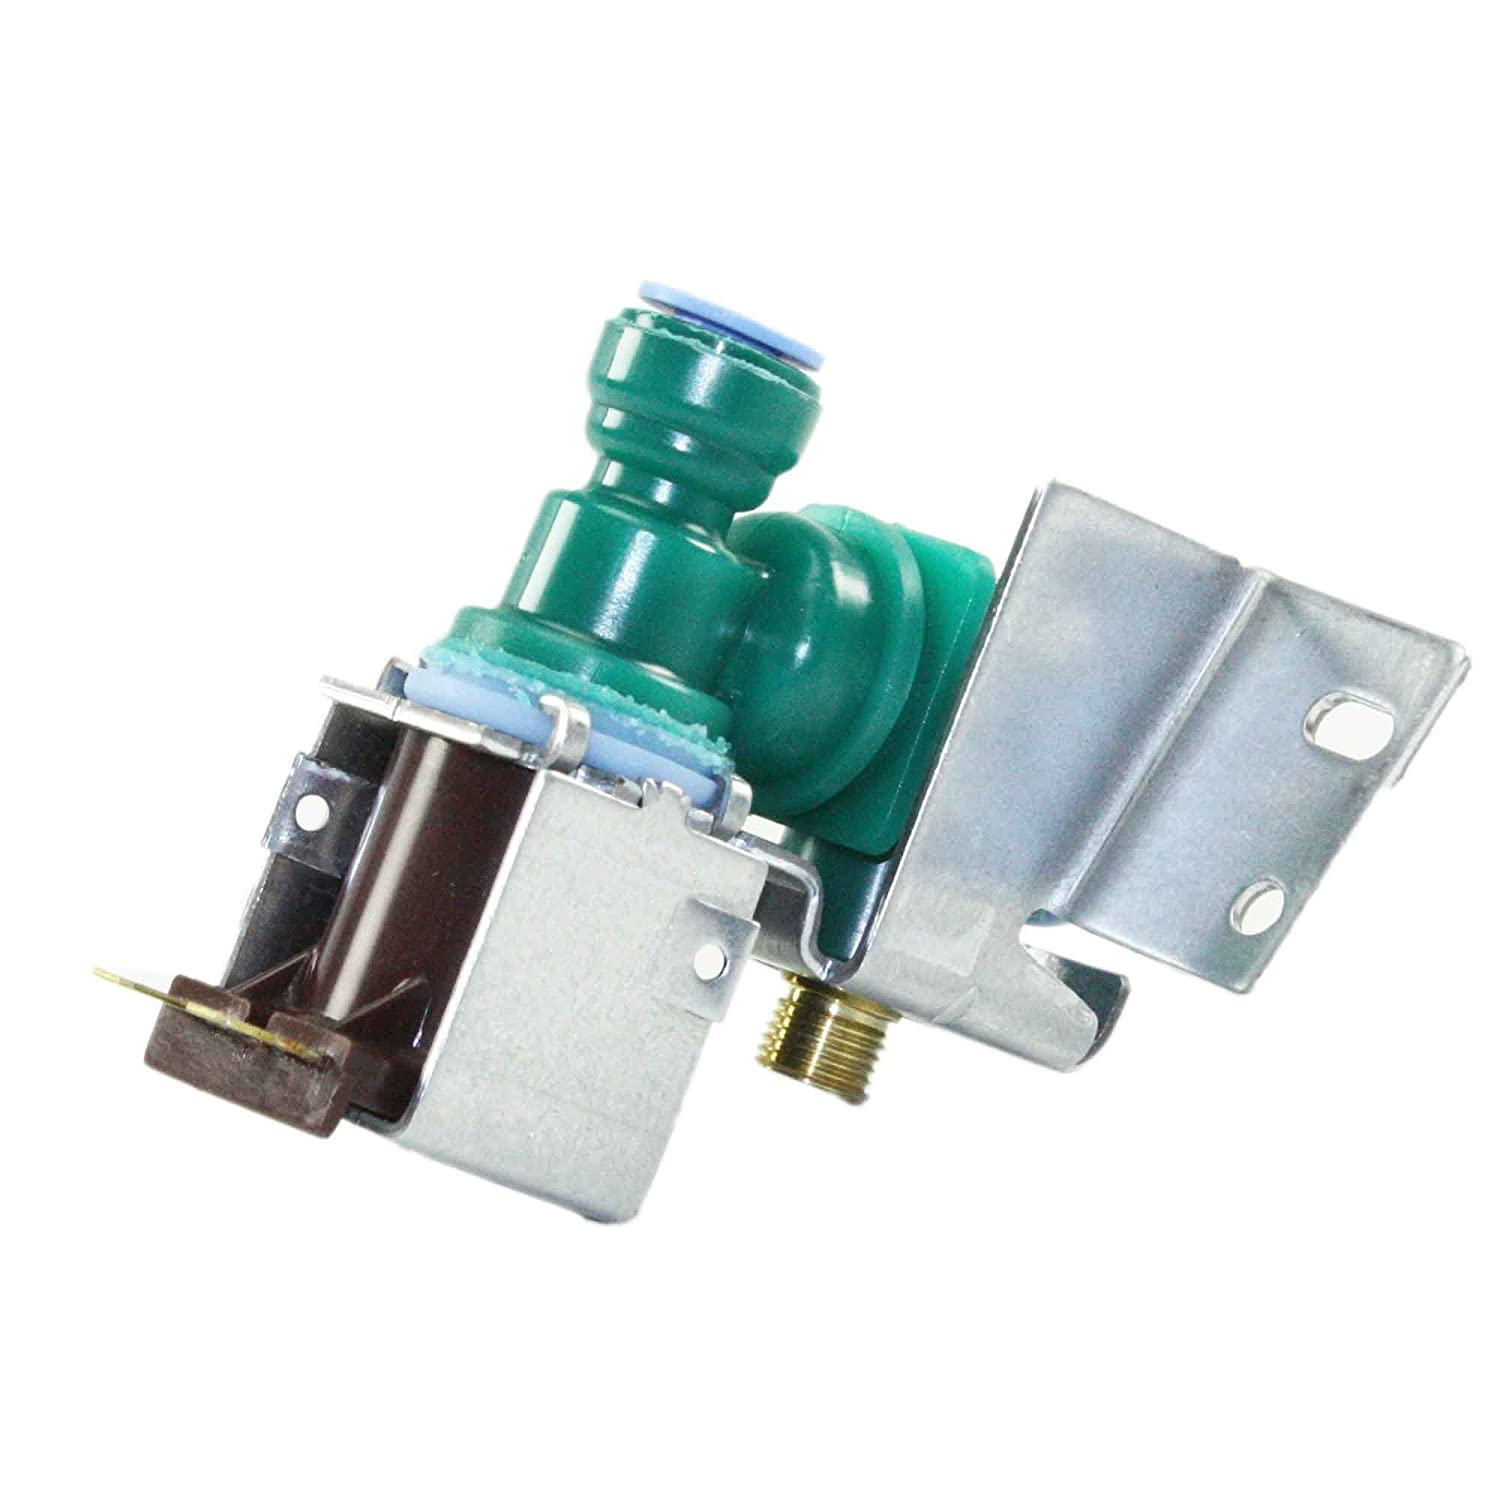 Supplying Demand W10394076 Refrigerator Water Valve Fits Maytag WPW10394076